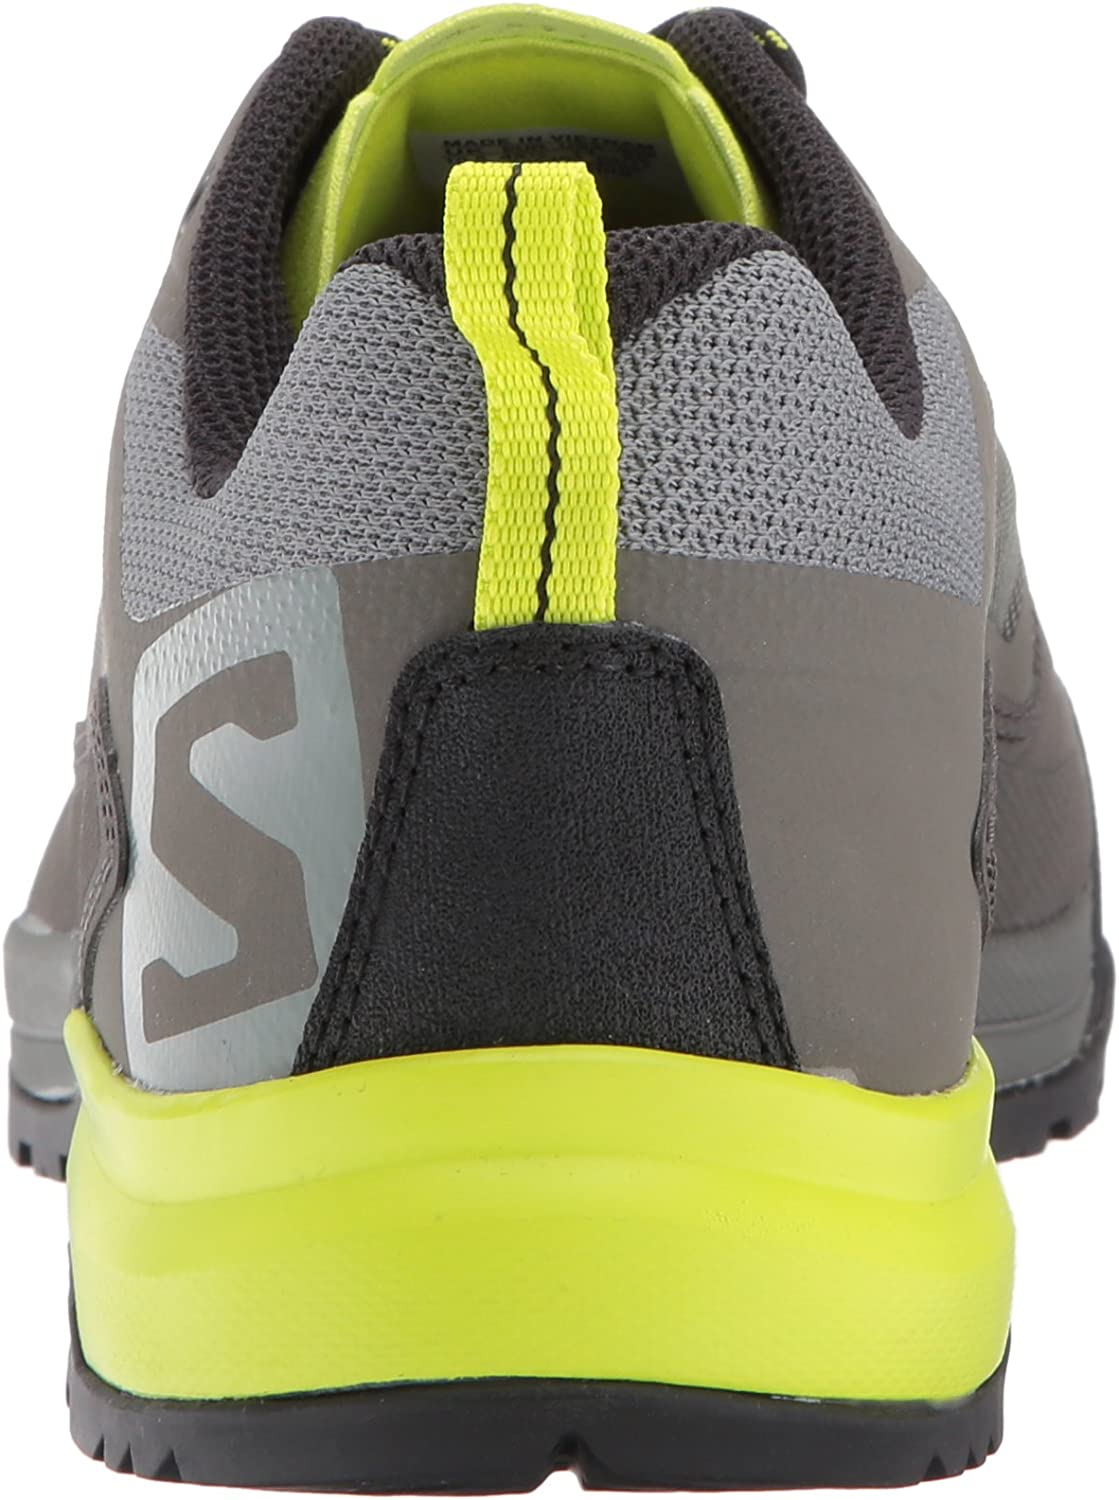 SALOMON Men's X Alp Spry Hiking Shoe Castor Gray/Beluga/Lime Punch